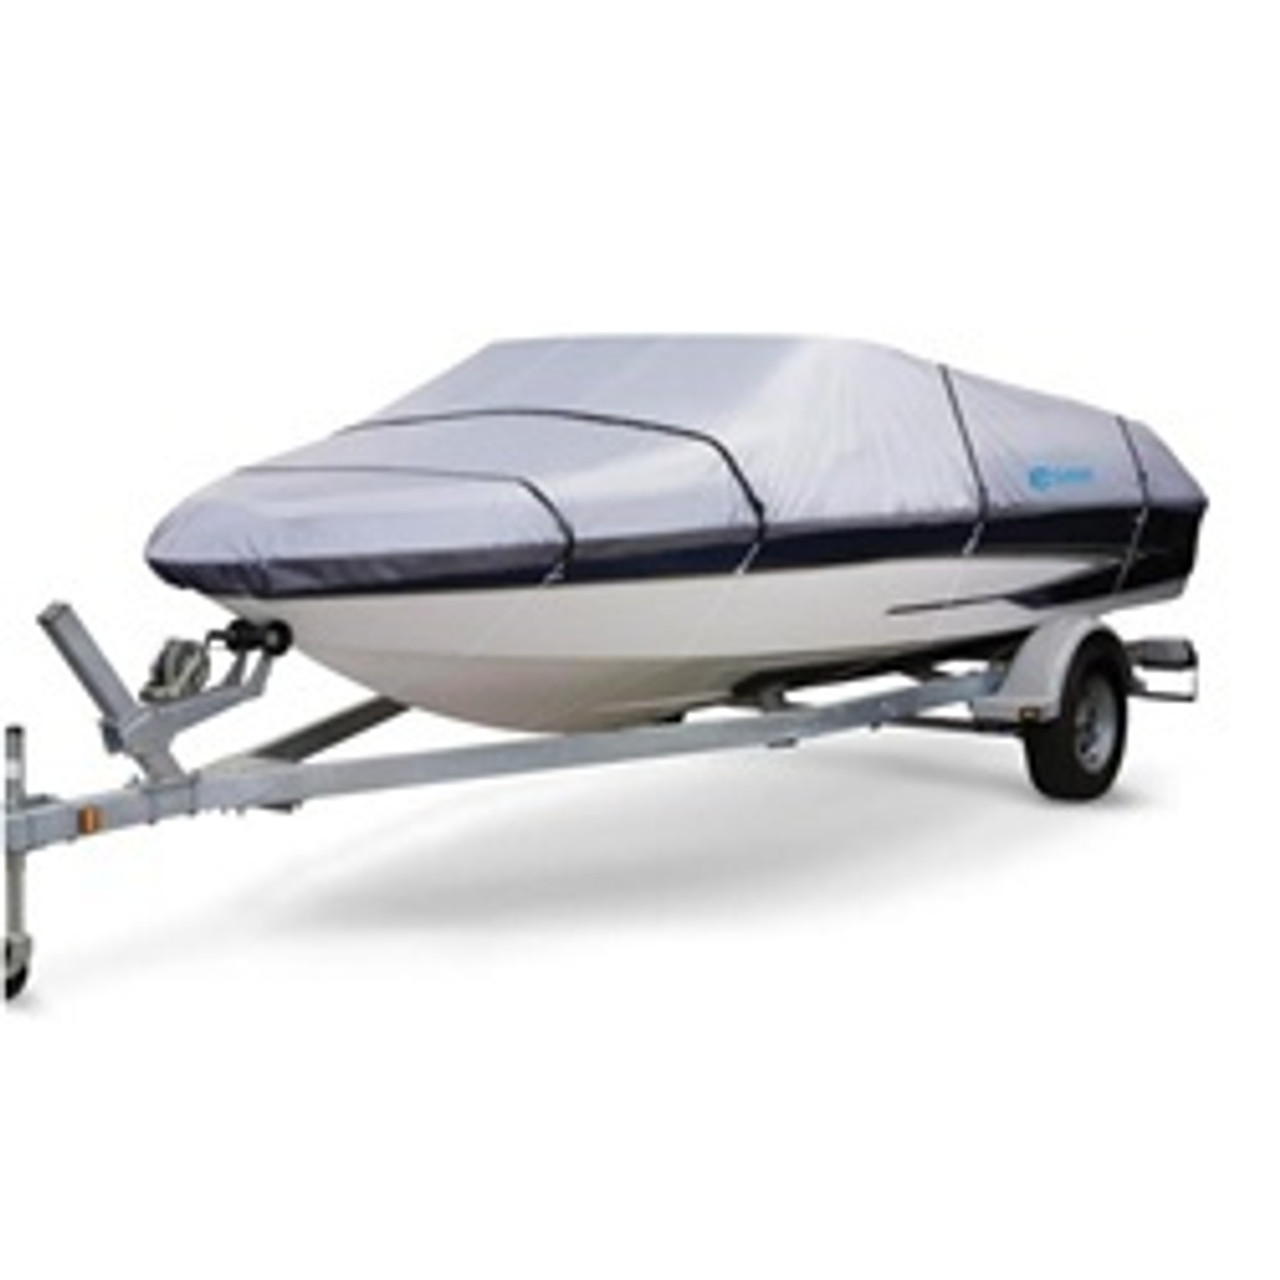 SilverMAX Trailerable Boat Cover